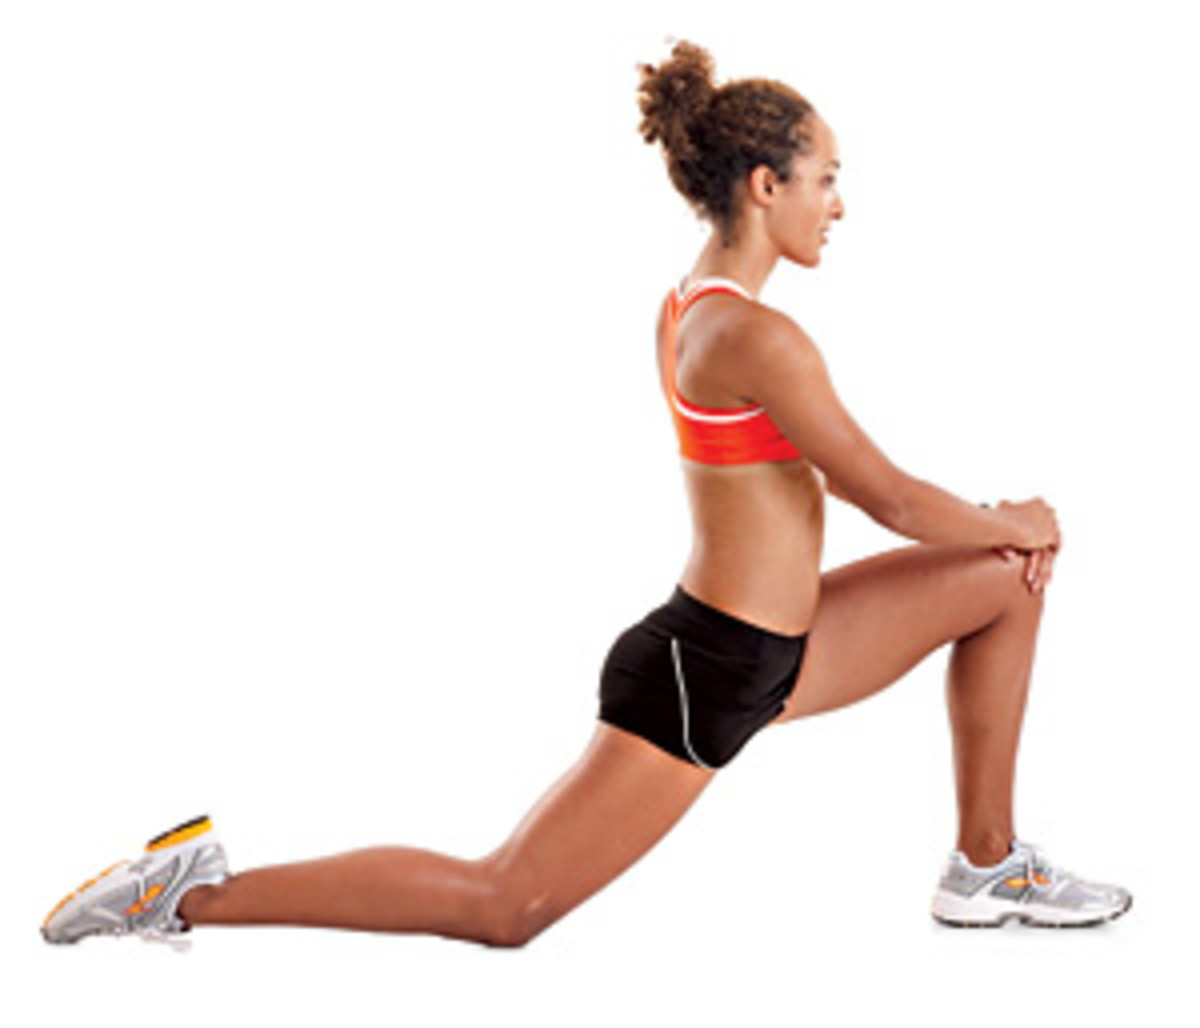 Lunge Stretch: Otherwise known as the hip flexor stretch. Stretches the muscles in front of the pelvis.